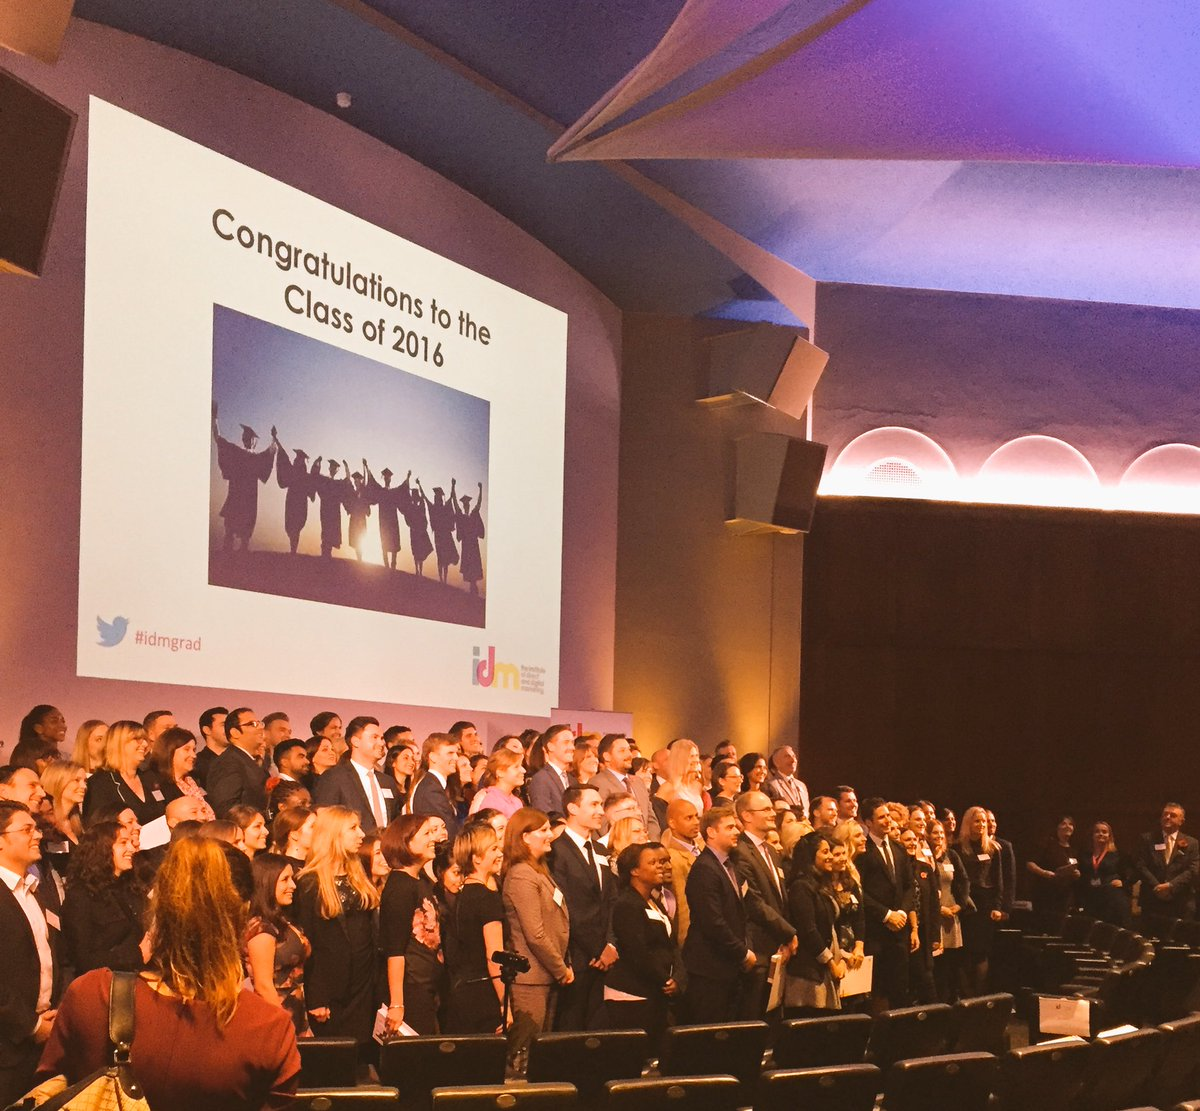 Congratulations to the class of 2016! #idmgrad https://t.co/NjV4OpIgEl